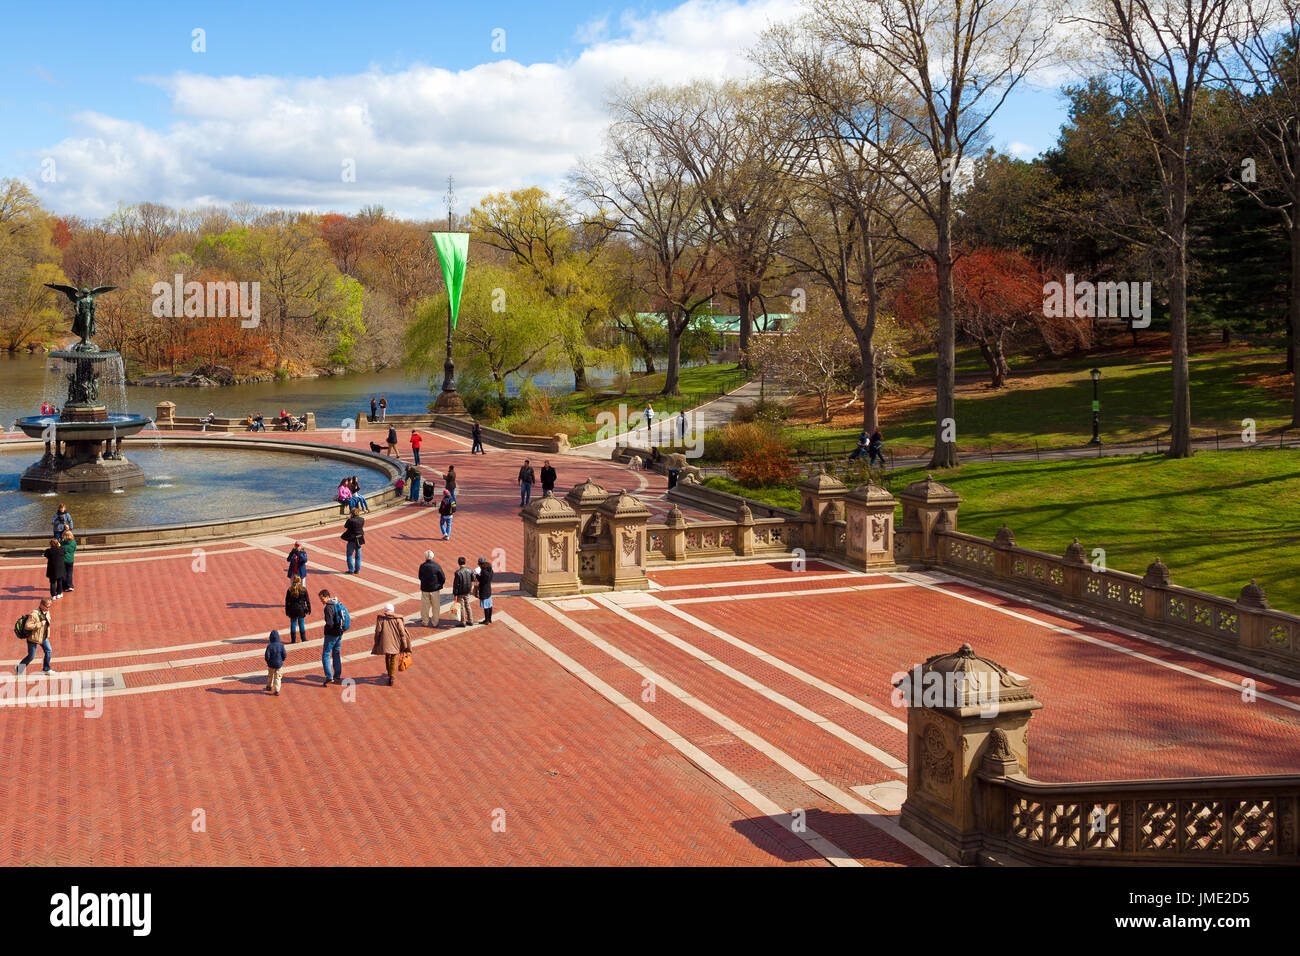 The Plaza In The Central Garden Stock Photos & The Plaza In The ...